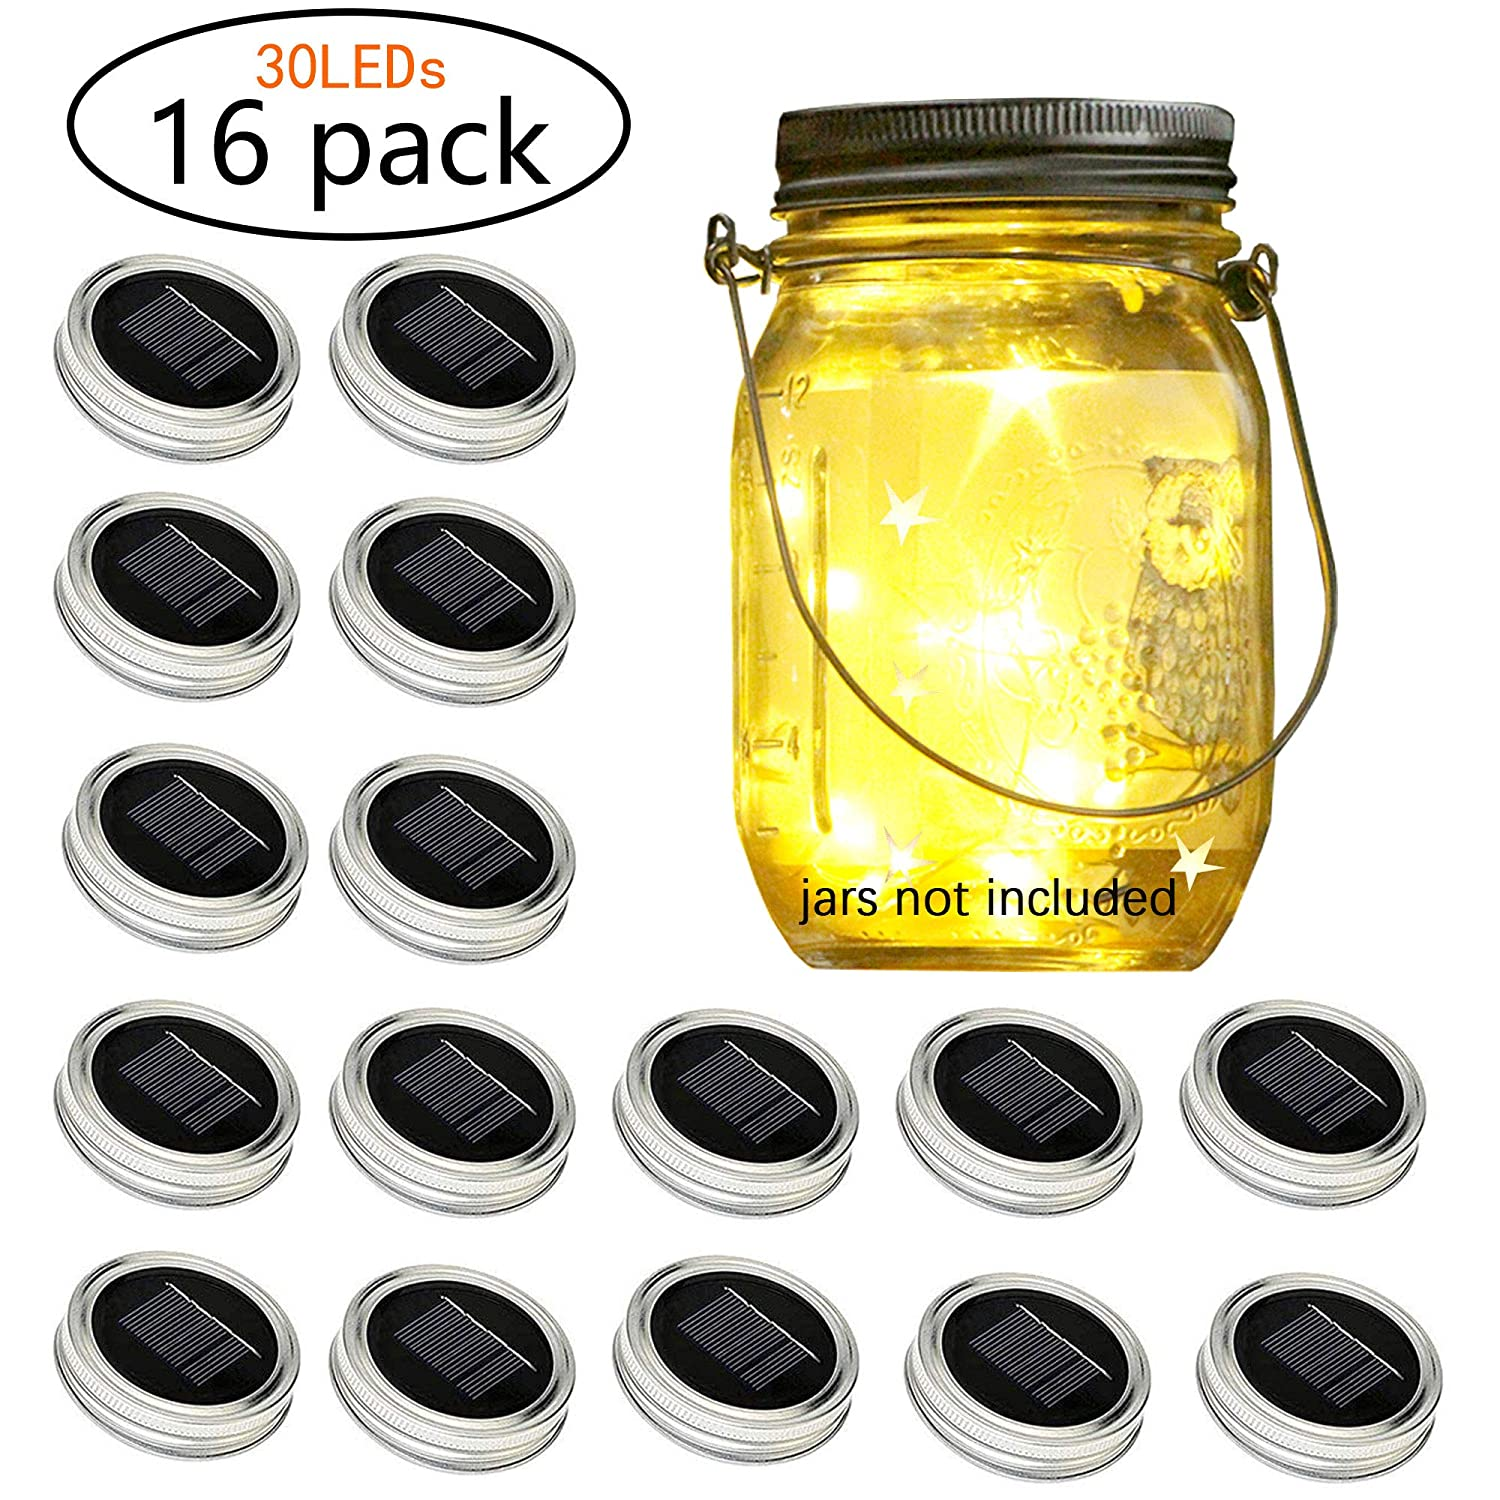 ARAn Solar-Powered Mason Jar Lid String Lights, 16 Packs of 30 LED Fairy Tale String Lights with (16 Hangers and 6 PVC) for Wedding, Courtyard, Garden, Family Party Birthday Party Decoration(No Jars)